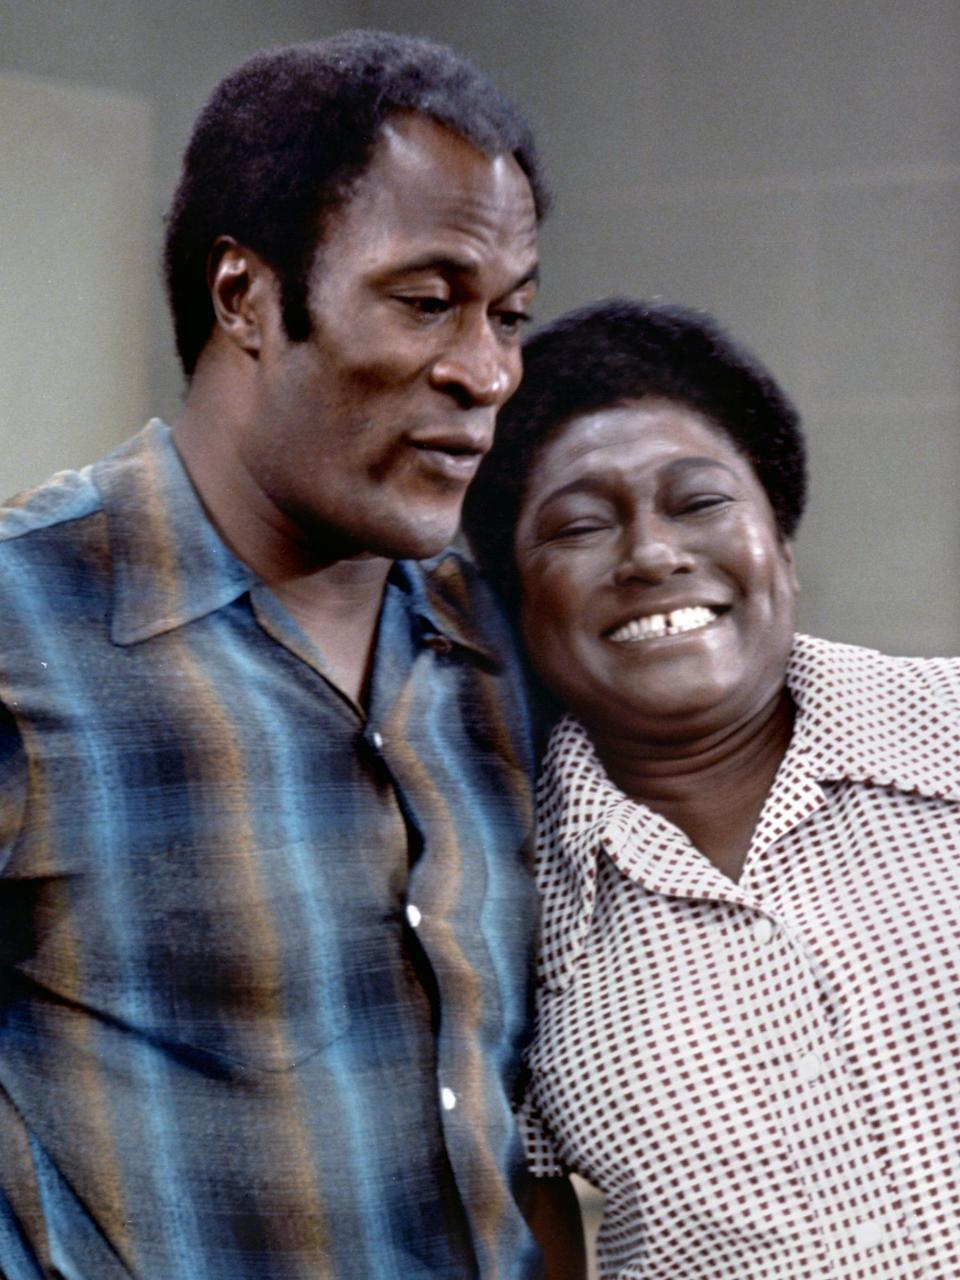 <p>With her cropped Afro and signature gap, the beloved and relatable Florida Evans, played by Esther Rolle, became a staple in Black households throughout the 1970s. The character was so loved that she went from a reoccurring role on <em>Maude </em>to starring in her own series <em>Good Times. </em></p>